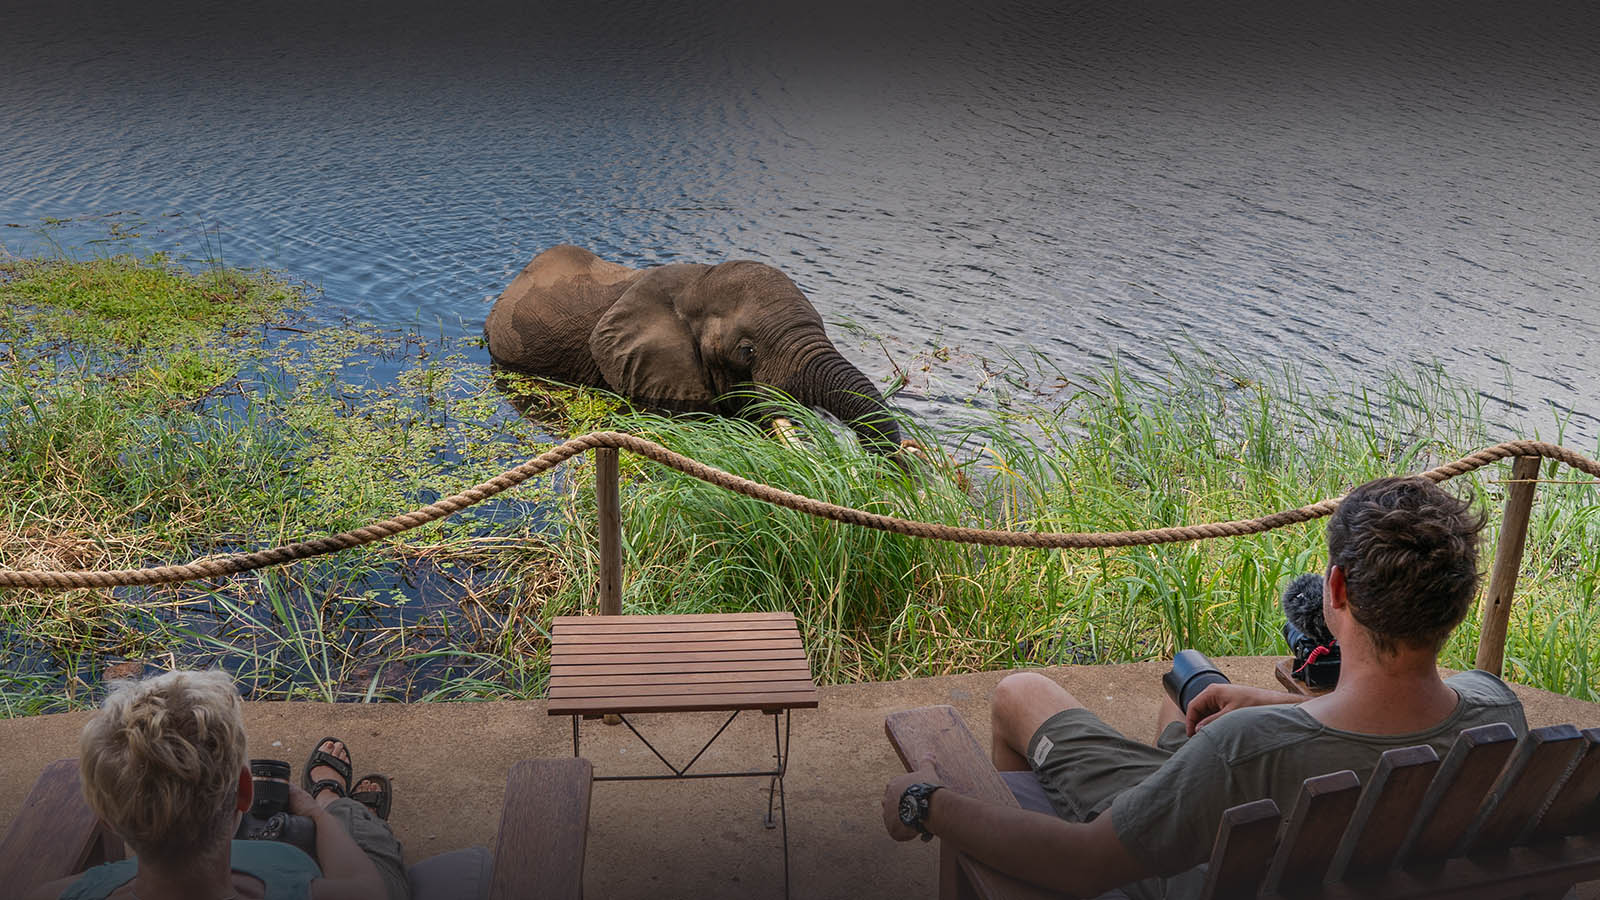 chongwe camp zambia-in-style-zambia-lodges-lower-zambezi-national-park-tents-wildlife-elephant-river